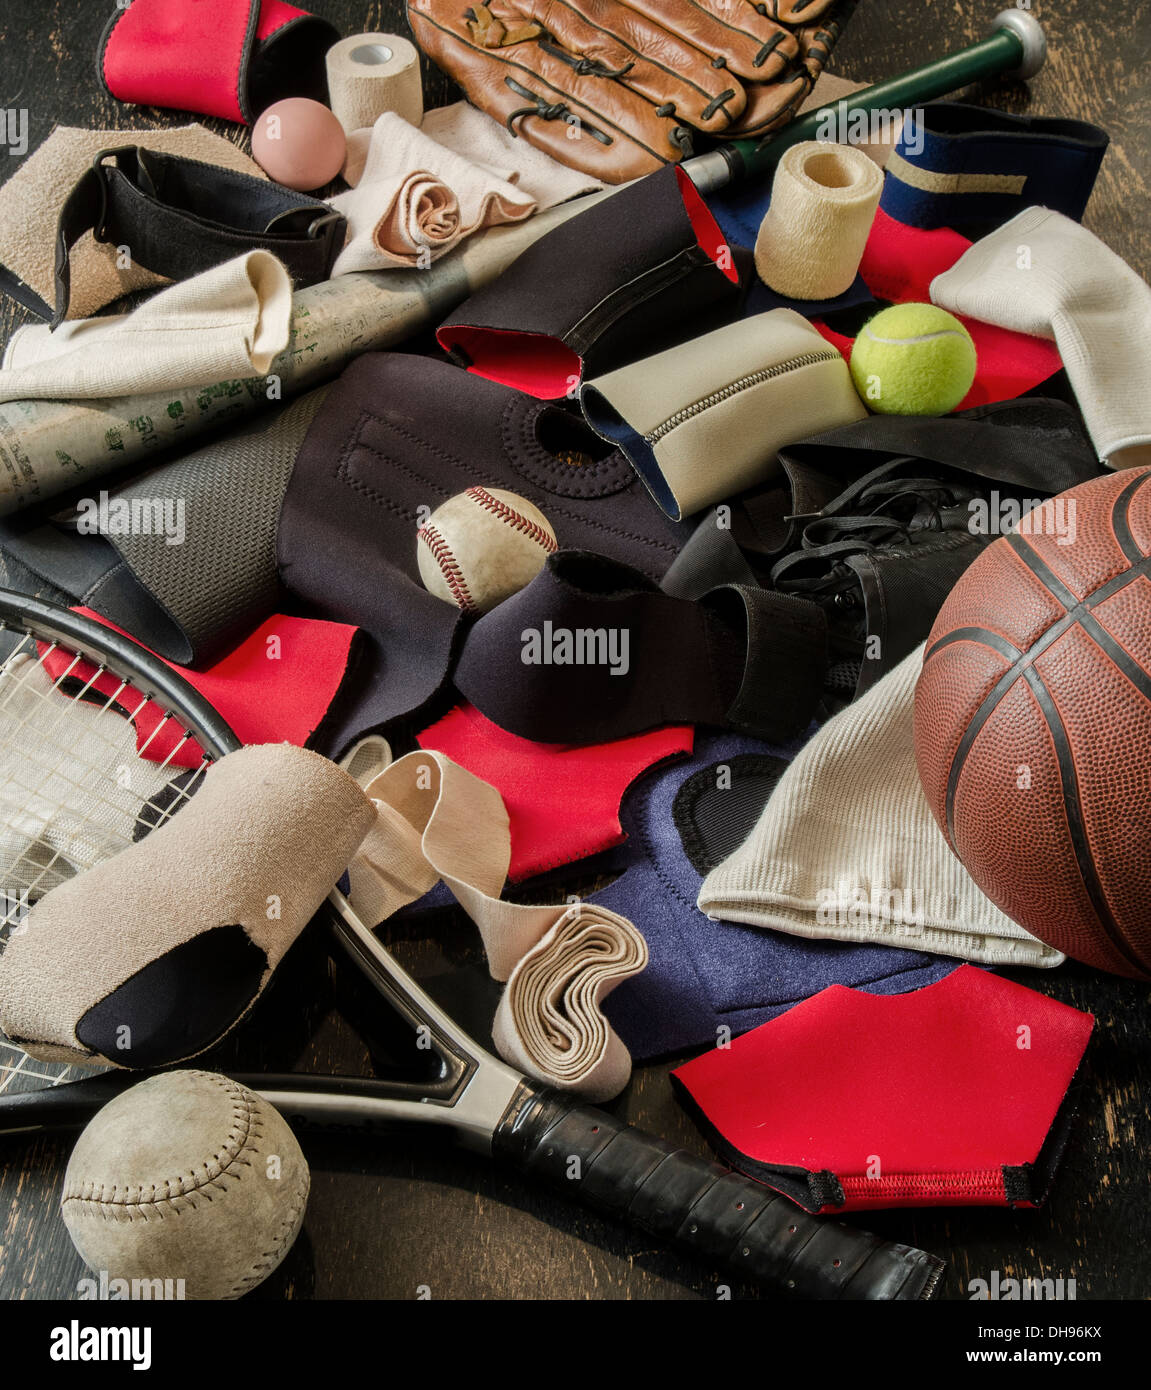 various straps and bandages for sports injuries - Stock Image